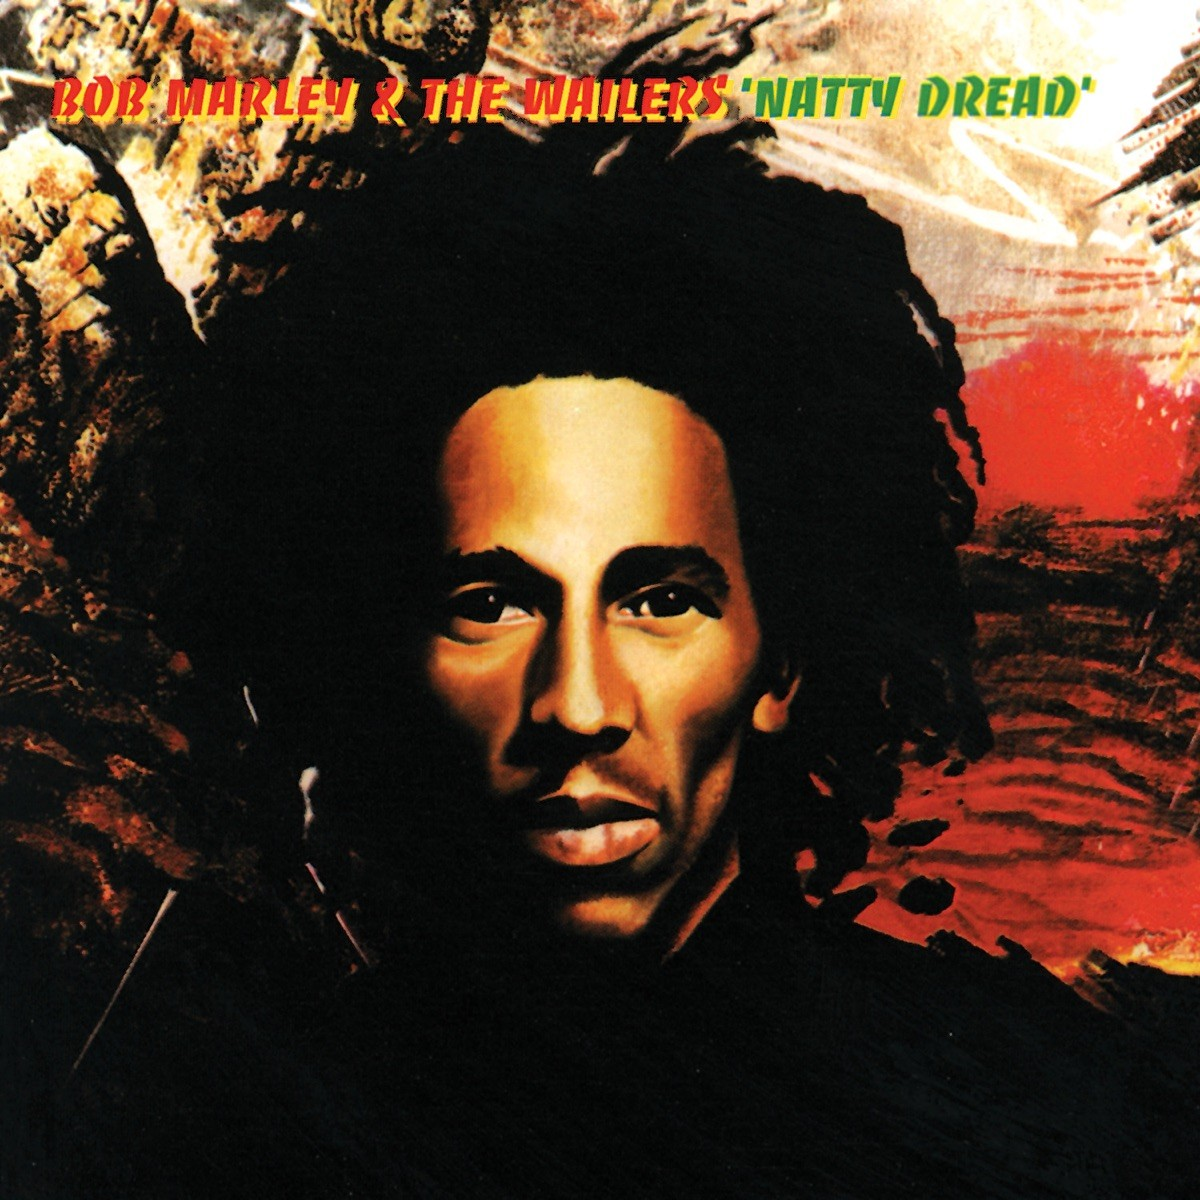 Bob Marley & The Wailers - Natty Dread (Half-Speed Master) VINYL - 060243508131